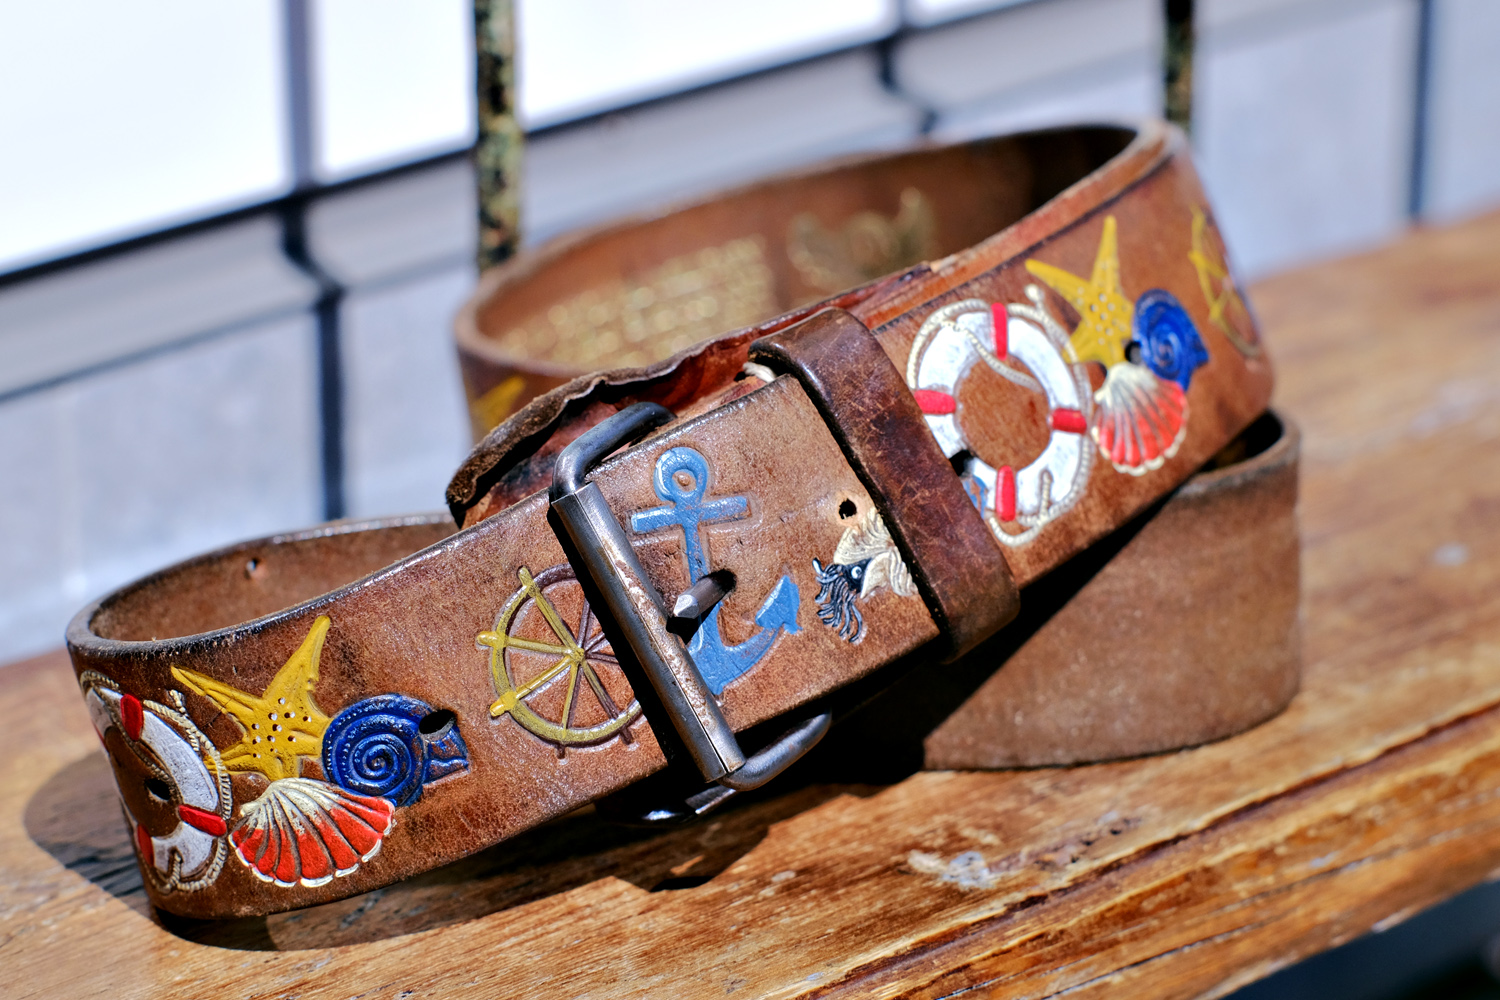 dukes-painted-belt-guertel-leder-01